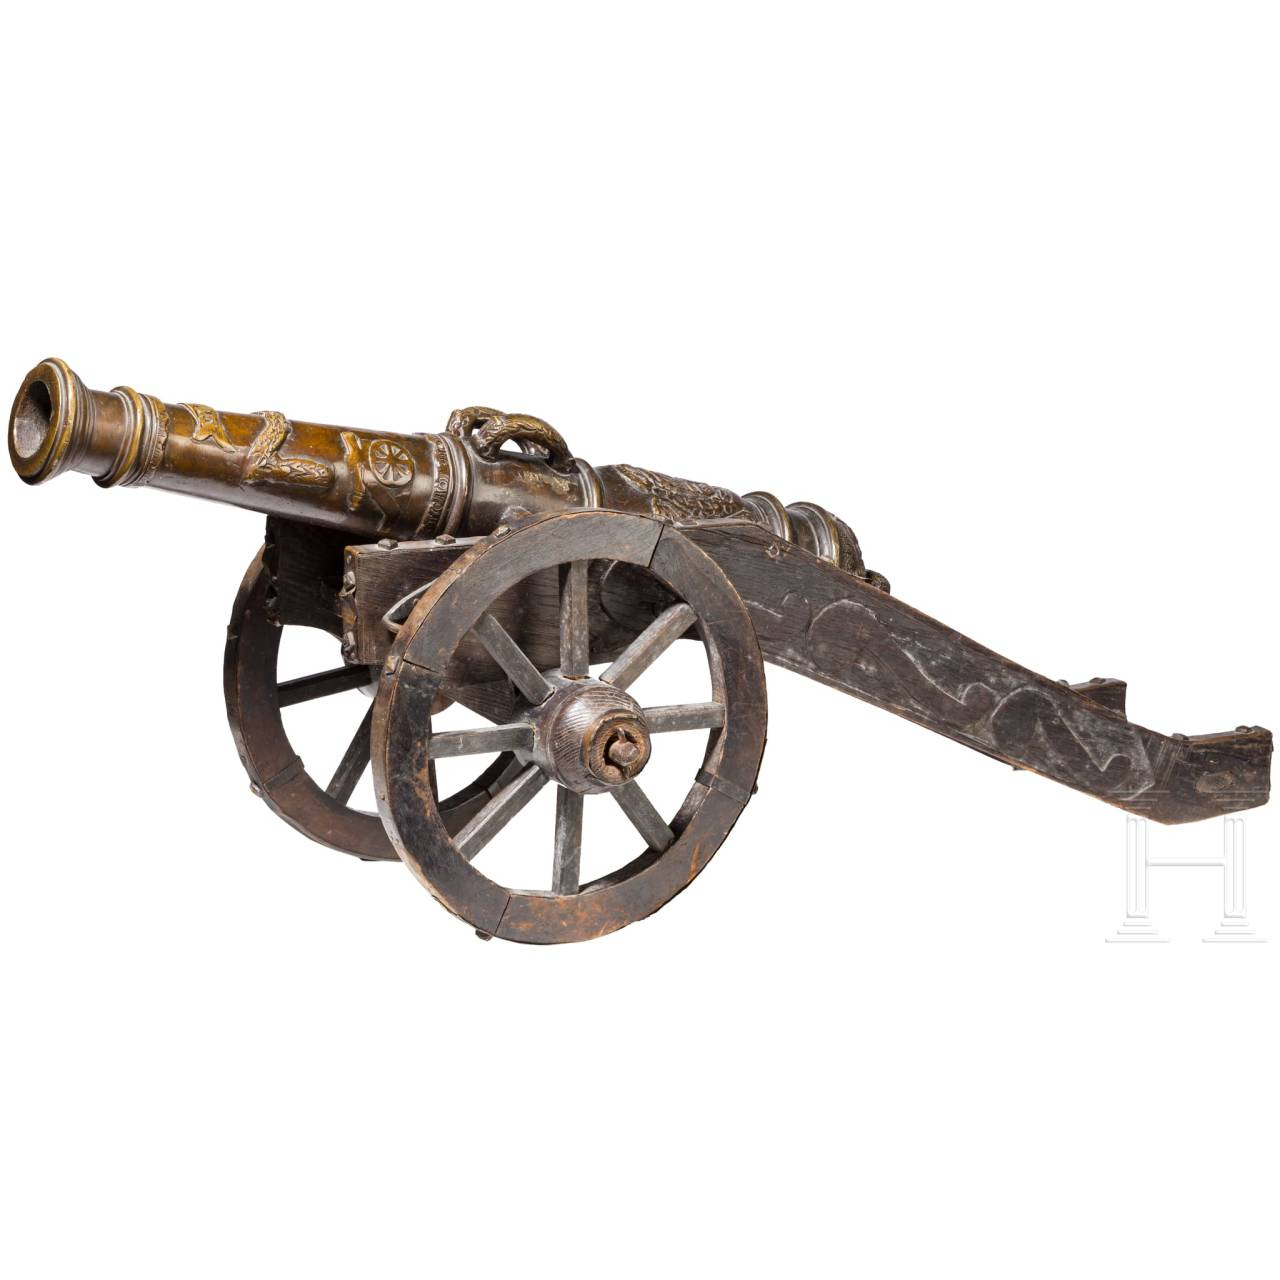 Model cannon, collector's replica in the style of the 16th century